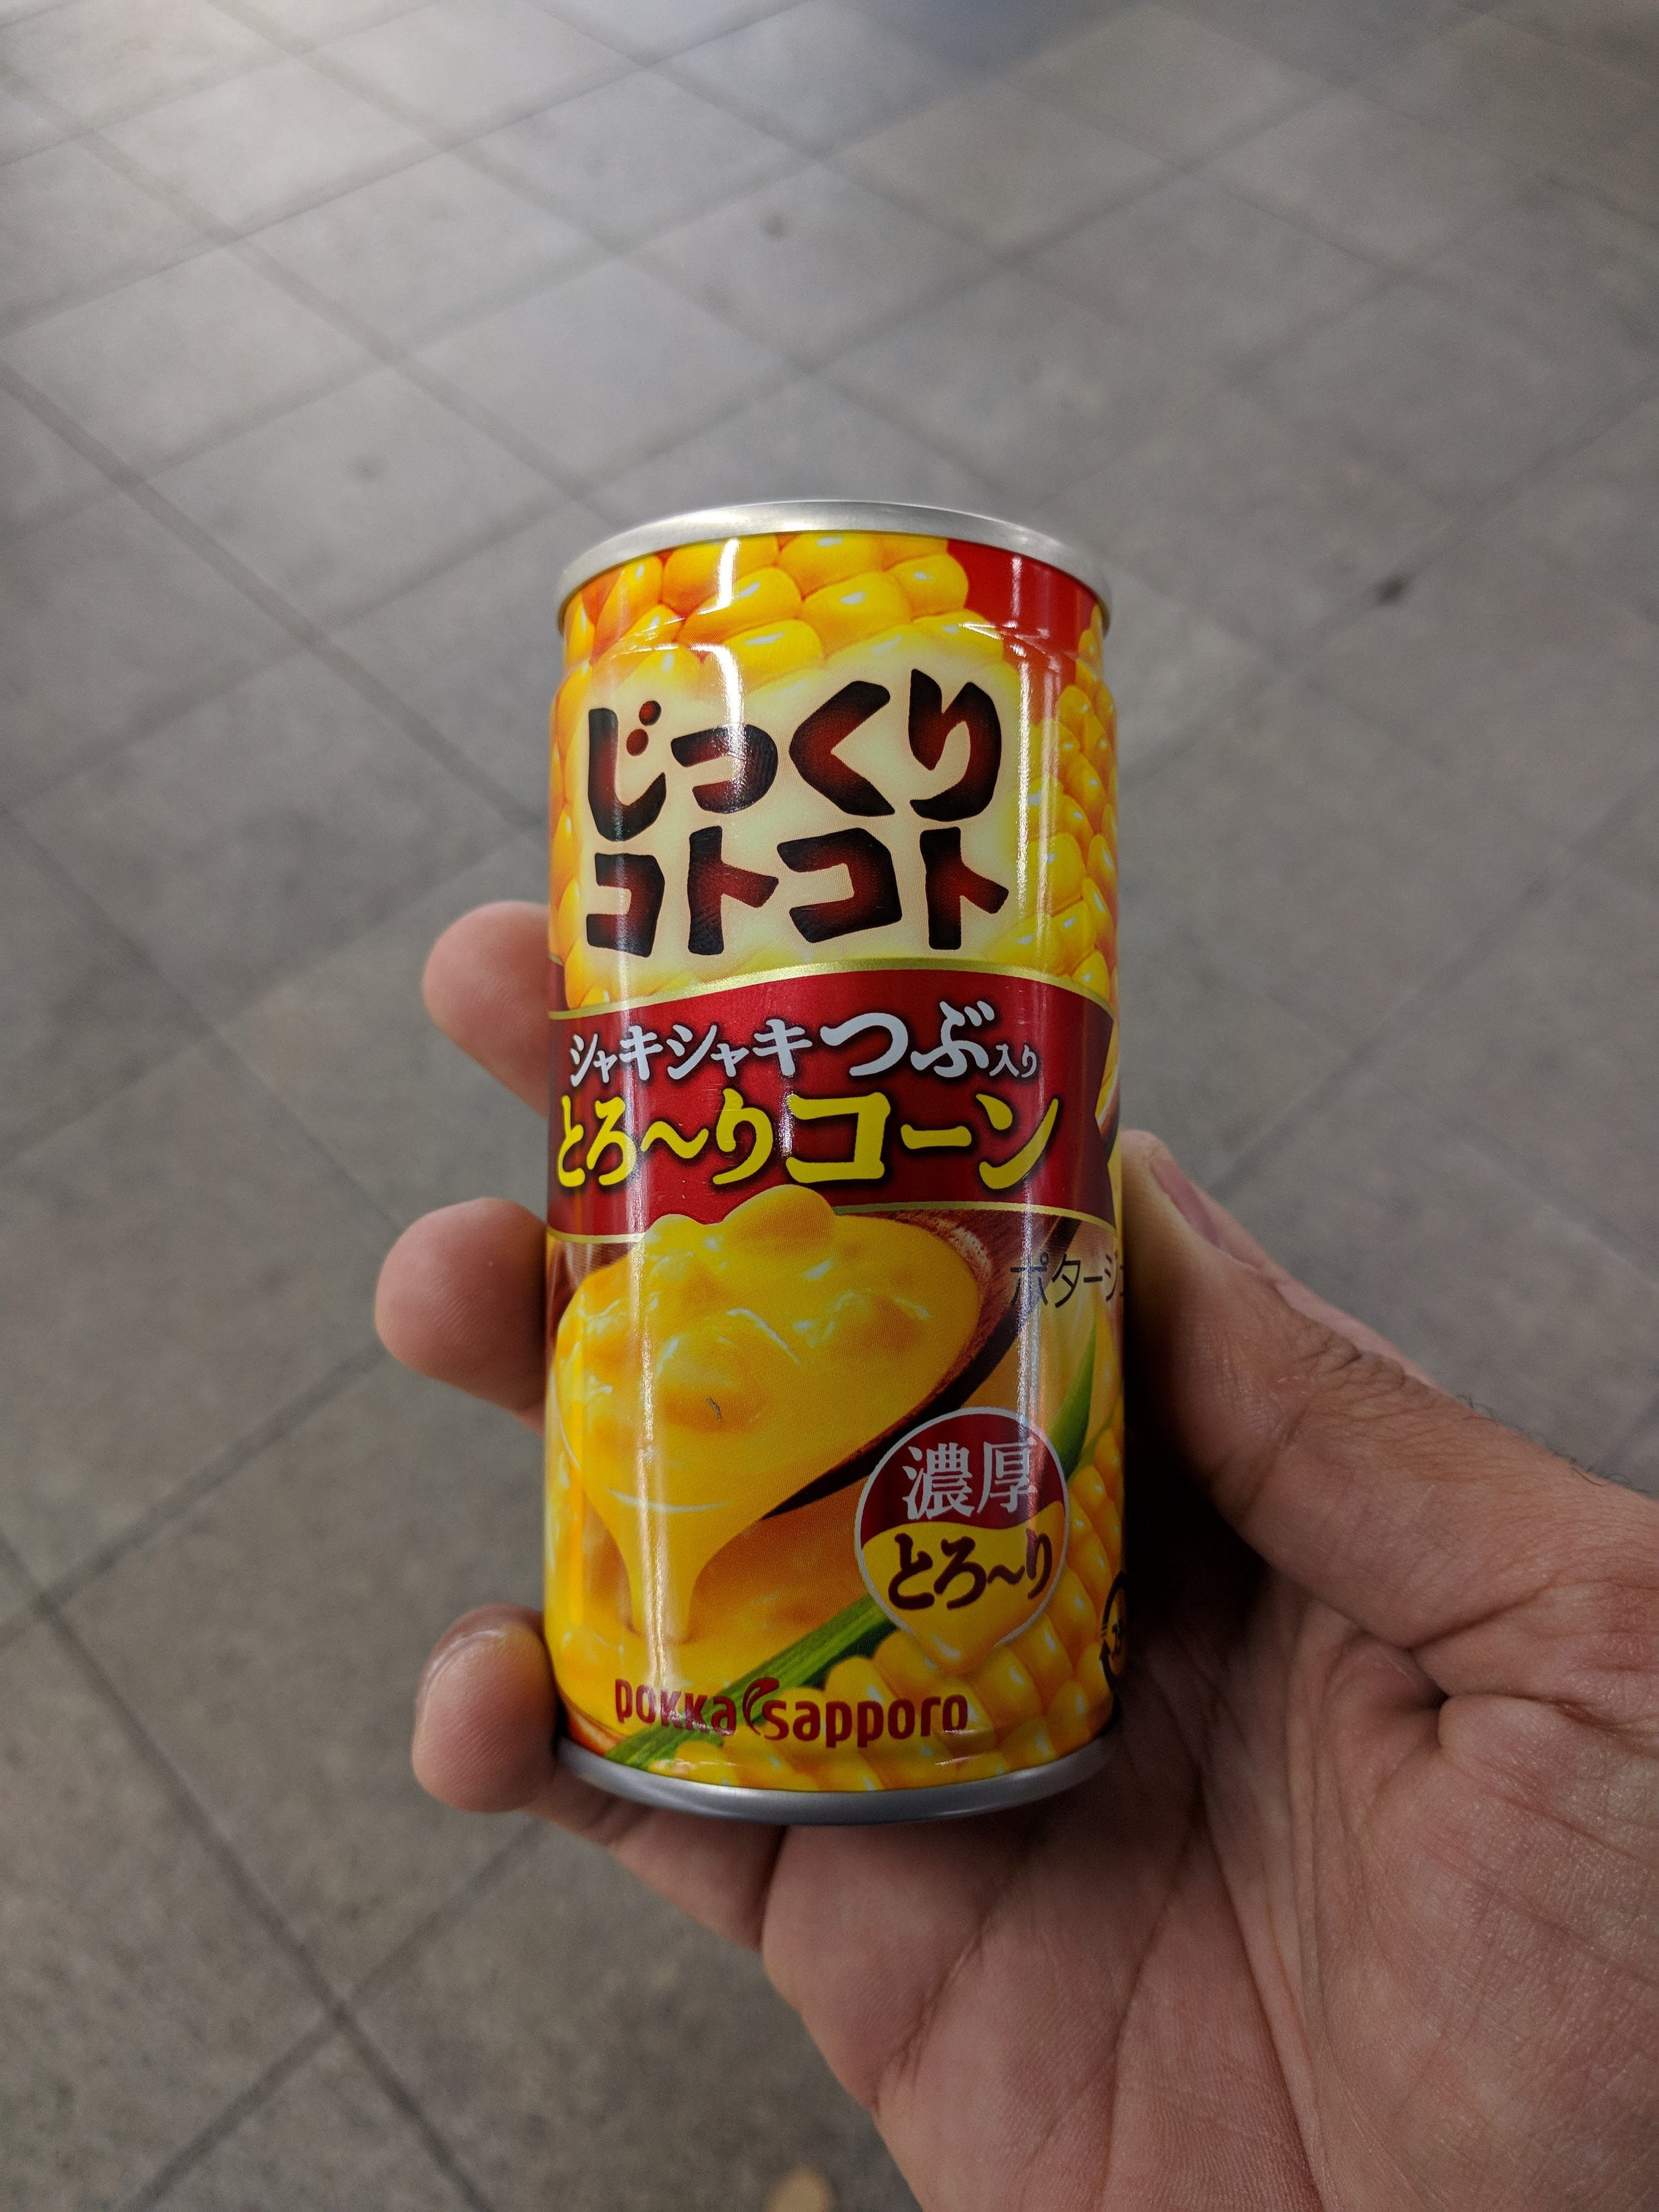 Heated, liquid corn in a can, with some kernals floating within for good measure. Yes, I drank the entire thing.